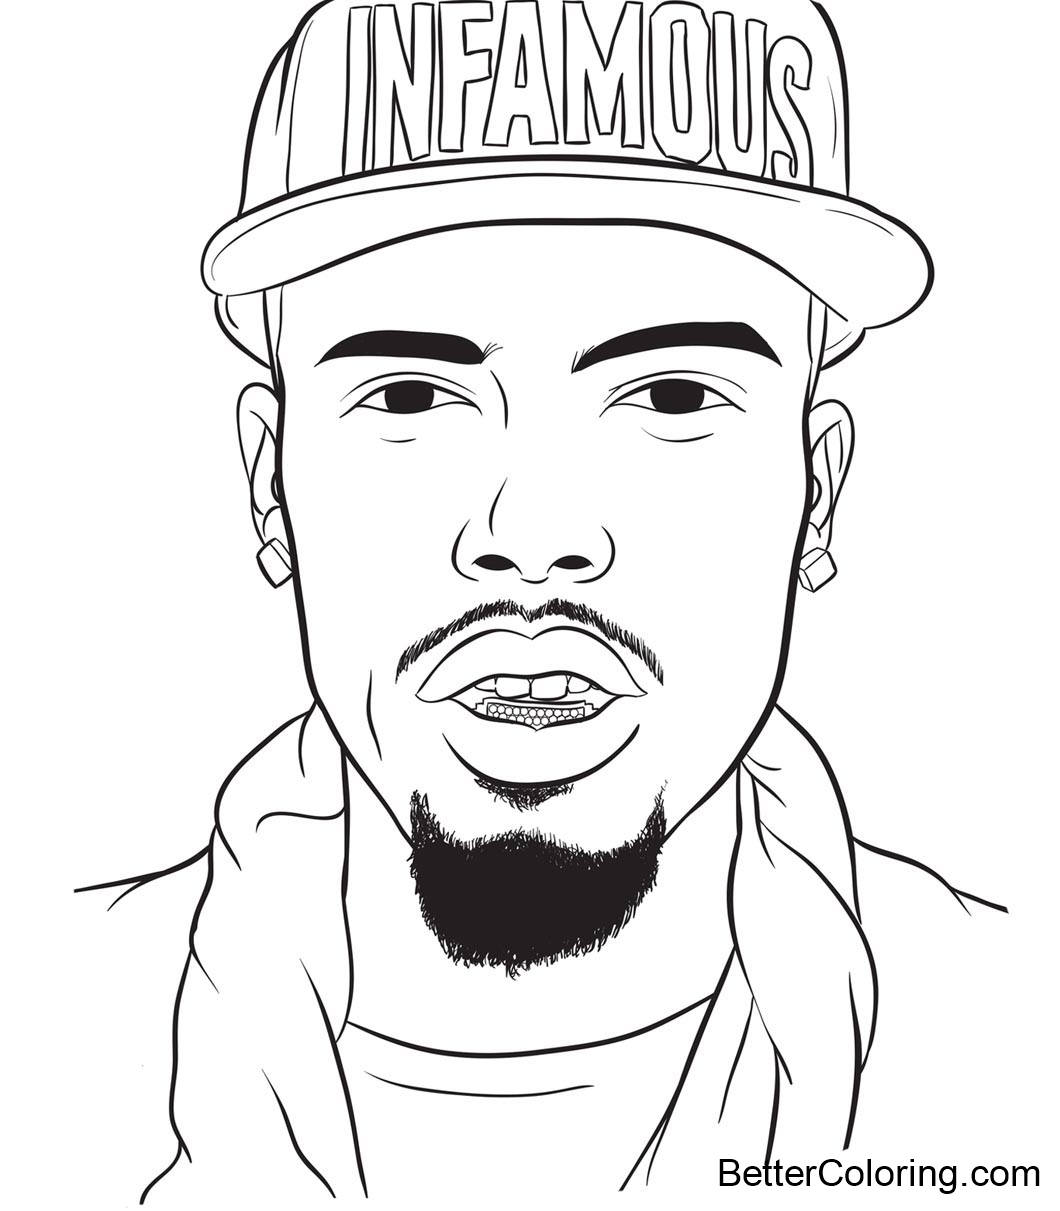 Free Drake Coloring Pages Fan Art printable